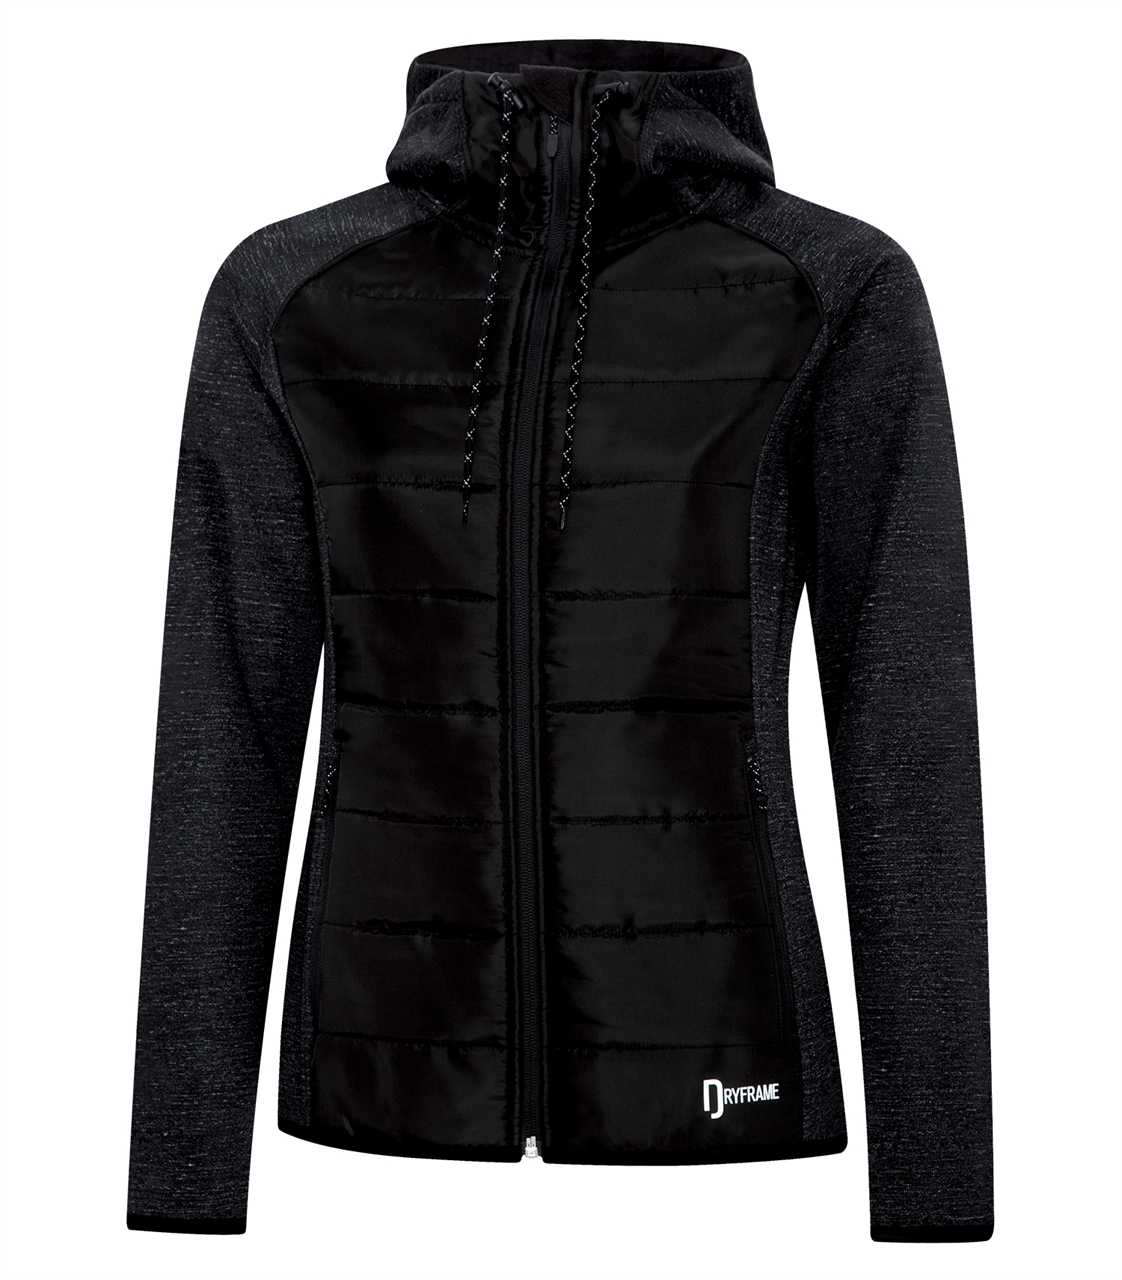 Picture of Dryframe Dry Tech Fleece Hybrid Ladies' Jacket